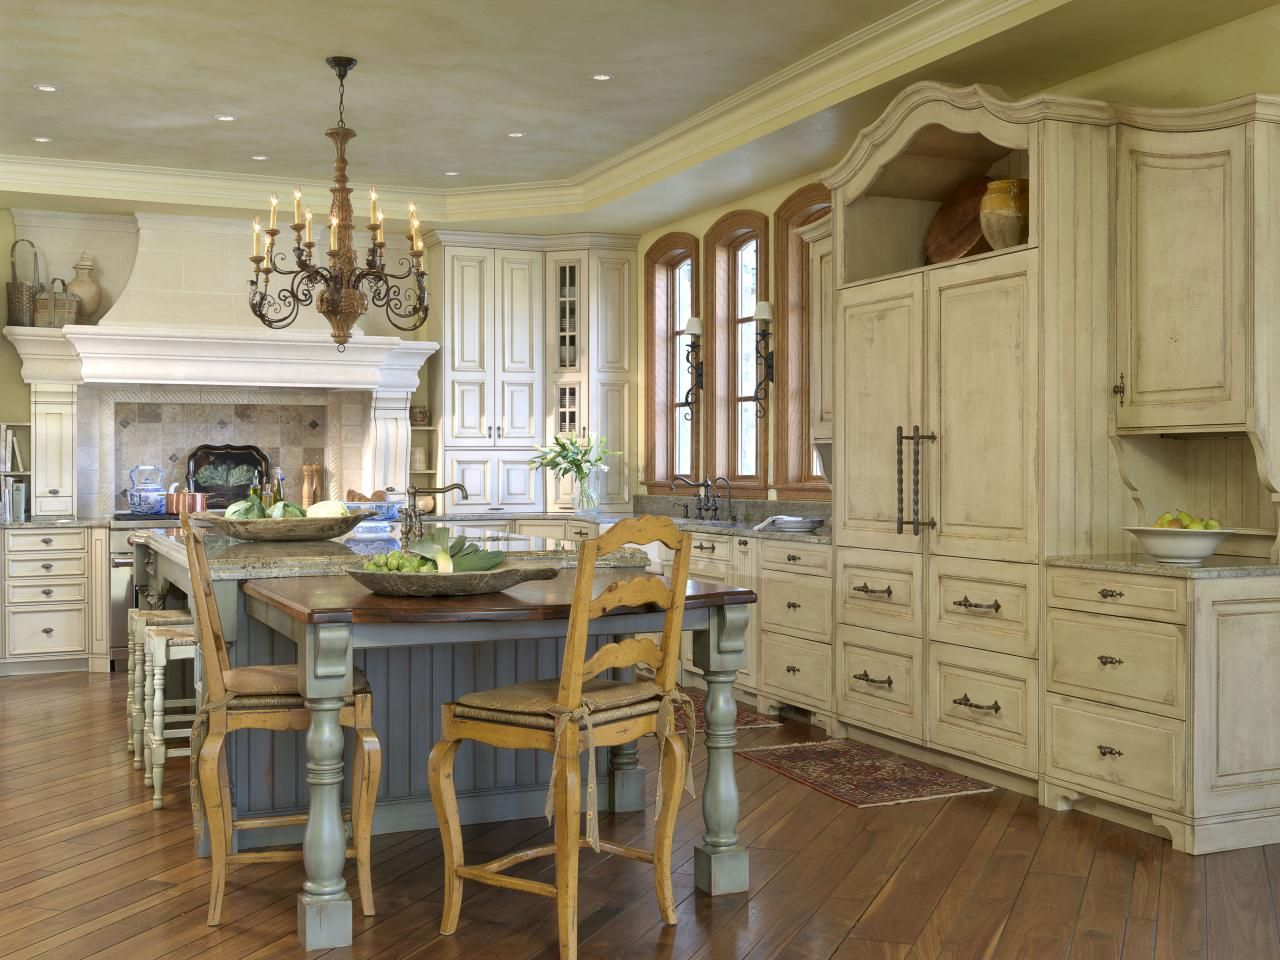 full size of kitchen room white french country kitchen design modern new 2017 design ideas on kitchen interior french country id=56243